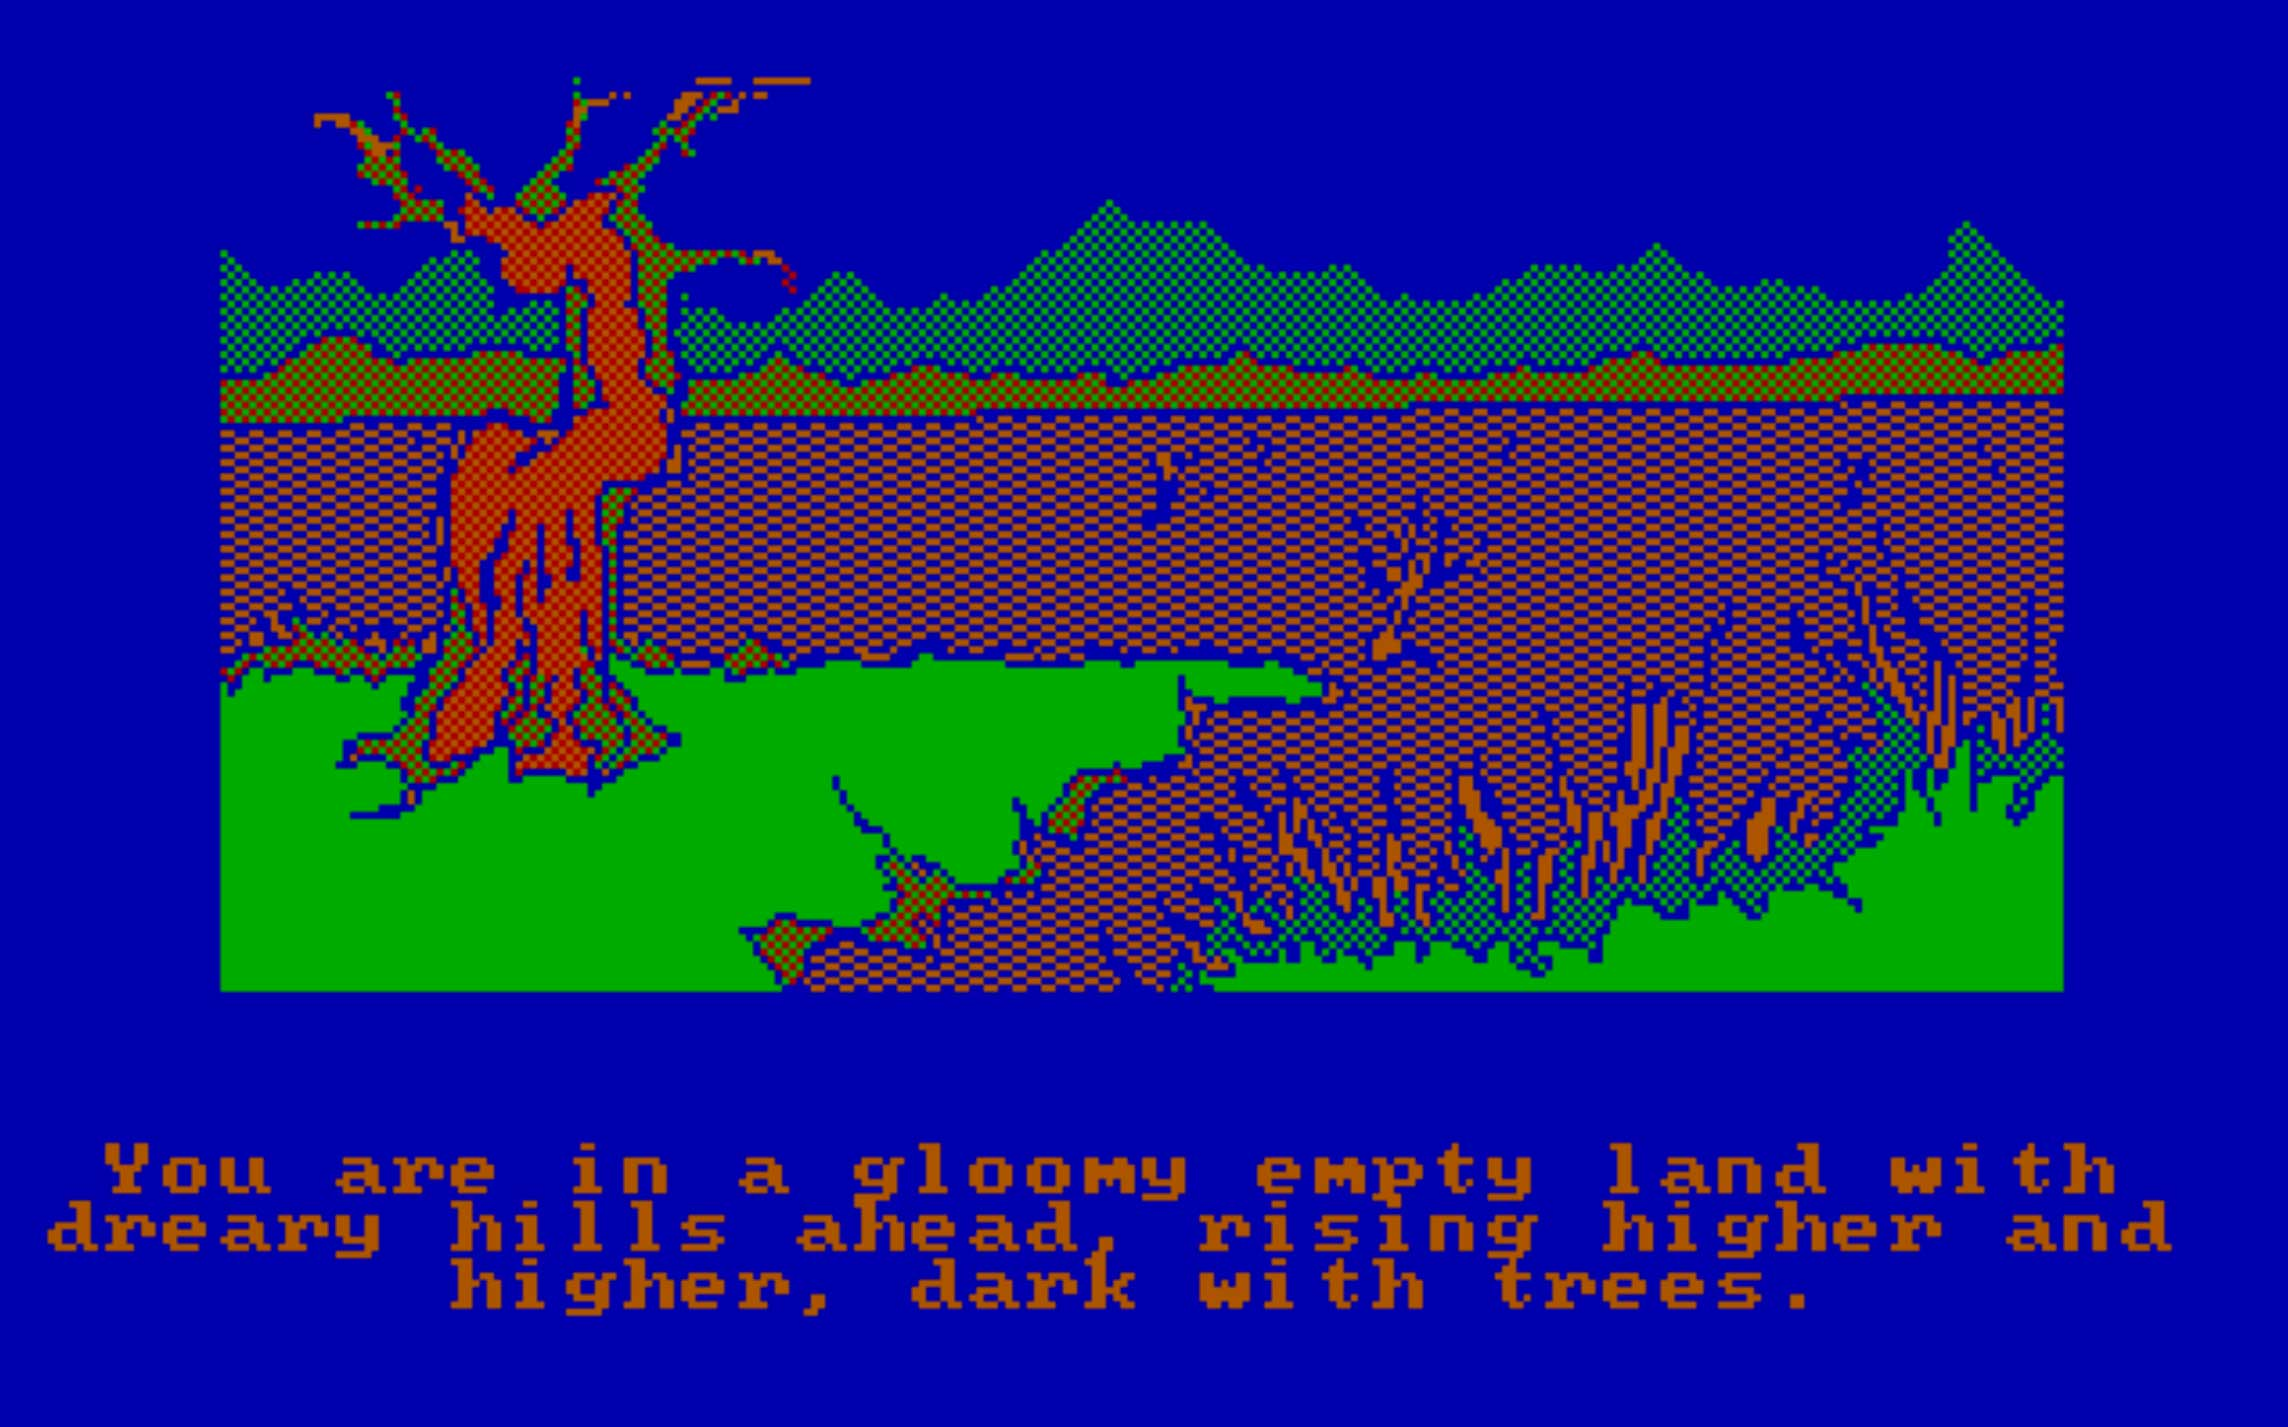 The Hobbit (1983)                                                              Open door. Go East. Enjoy game. If you want to go really old school, you can turn the graphics off in this                                 text-based game, guiding Bilbo through Middle Earth using only your imagination as your eyes.